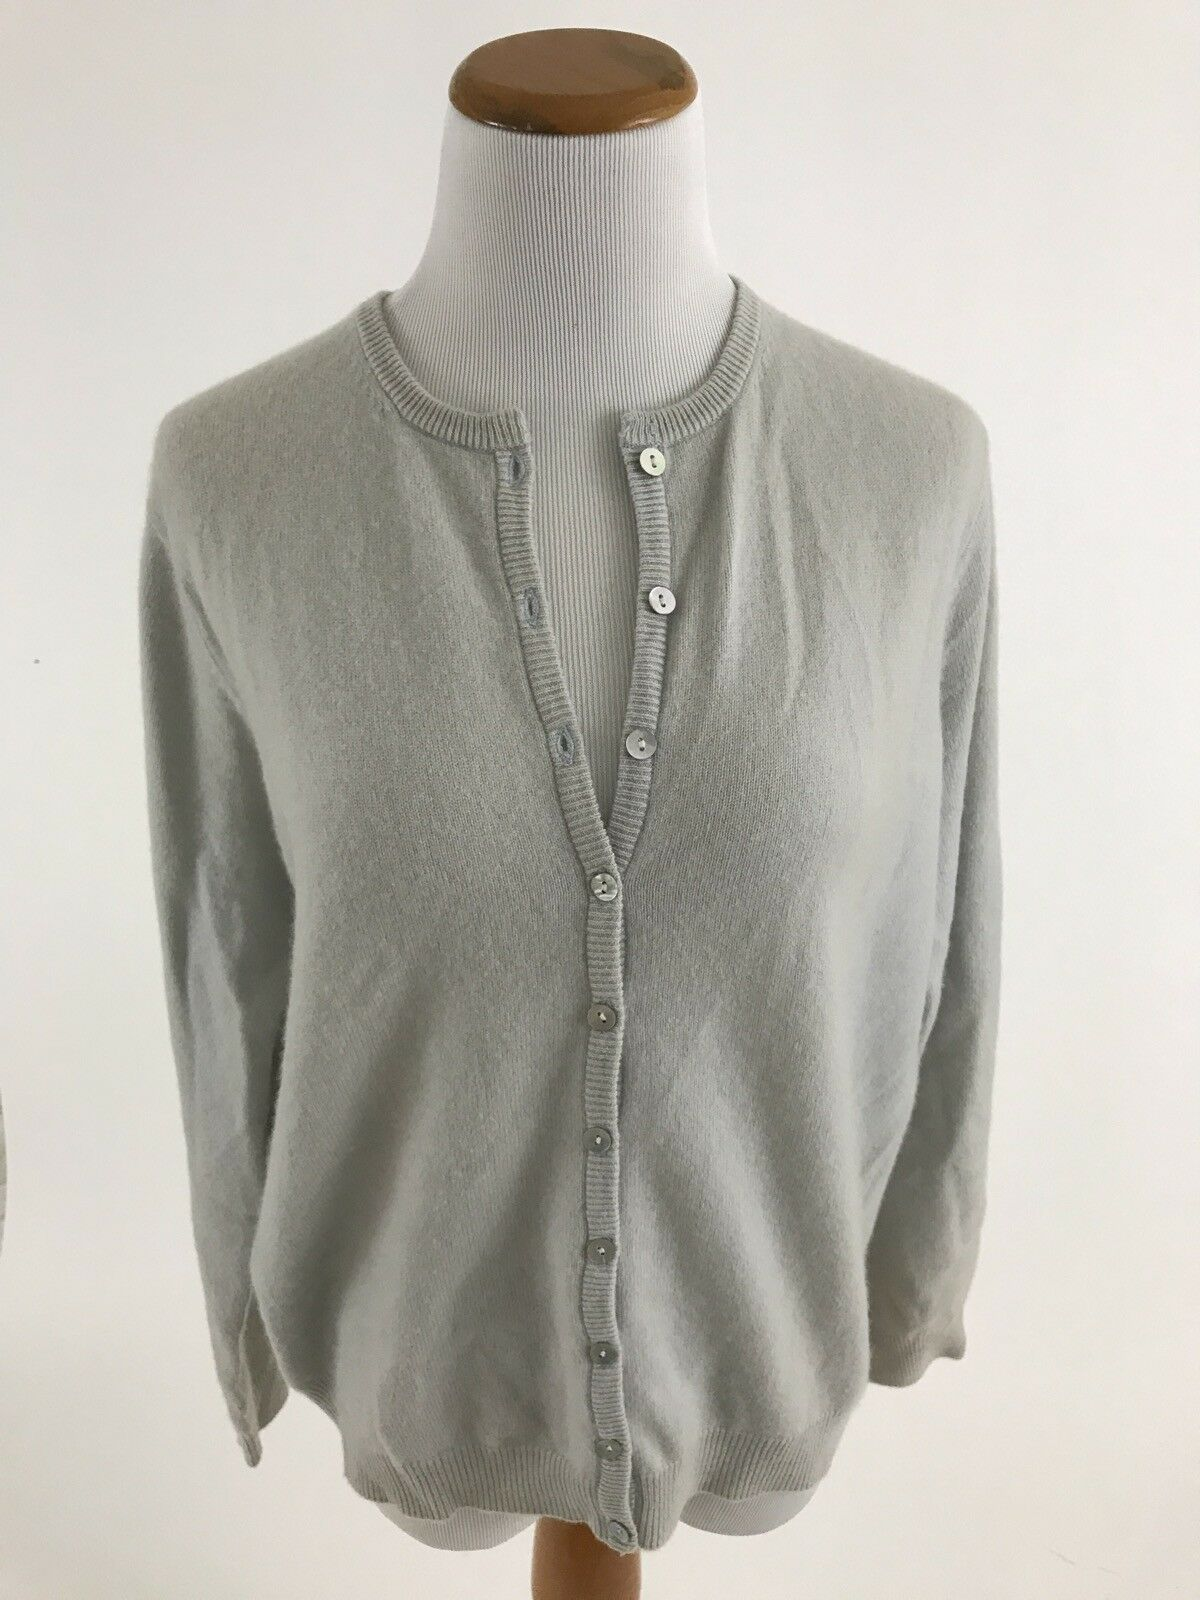 LL BEAN light gray 100% cashmere cardigan sweater women's M ...